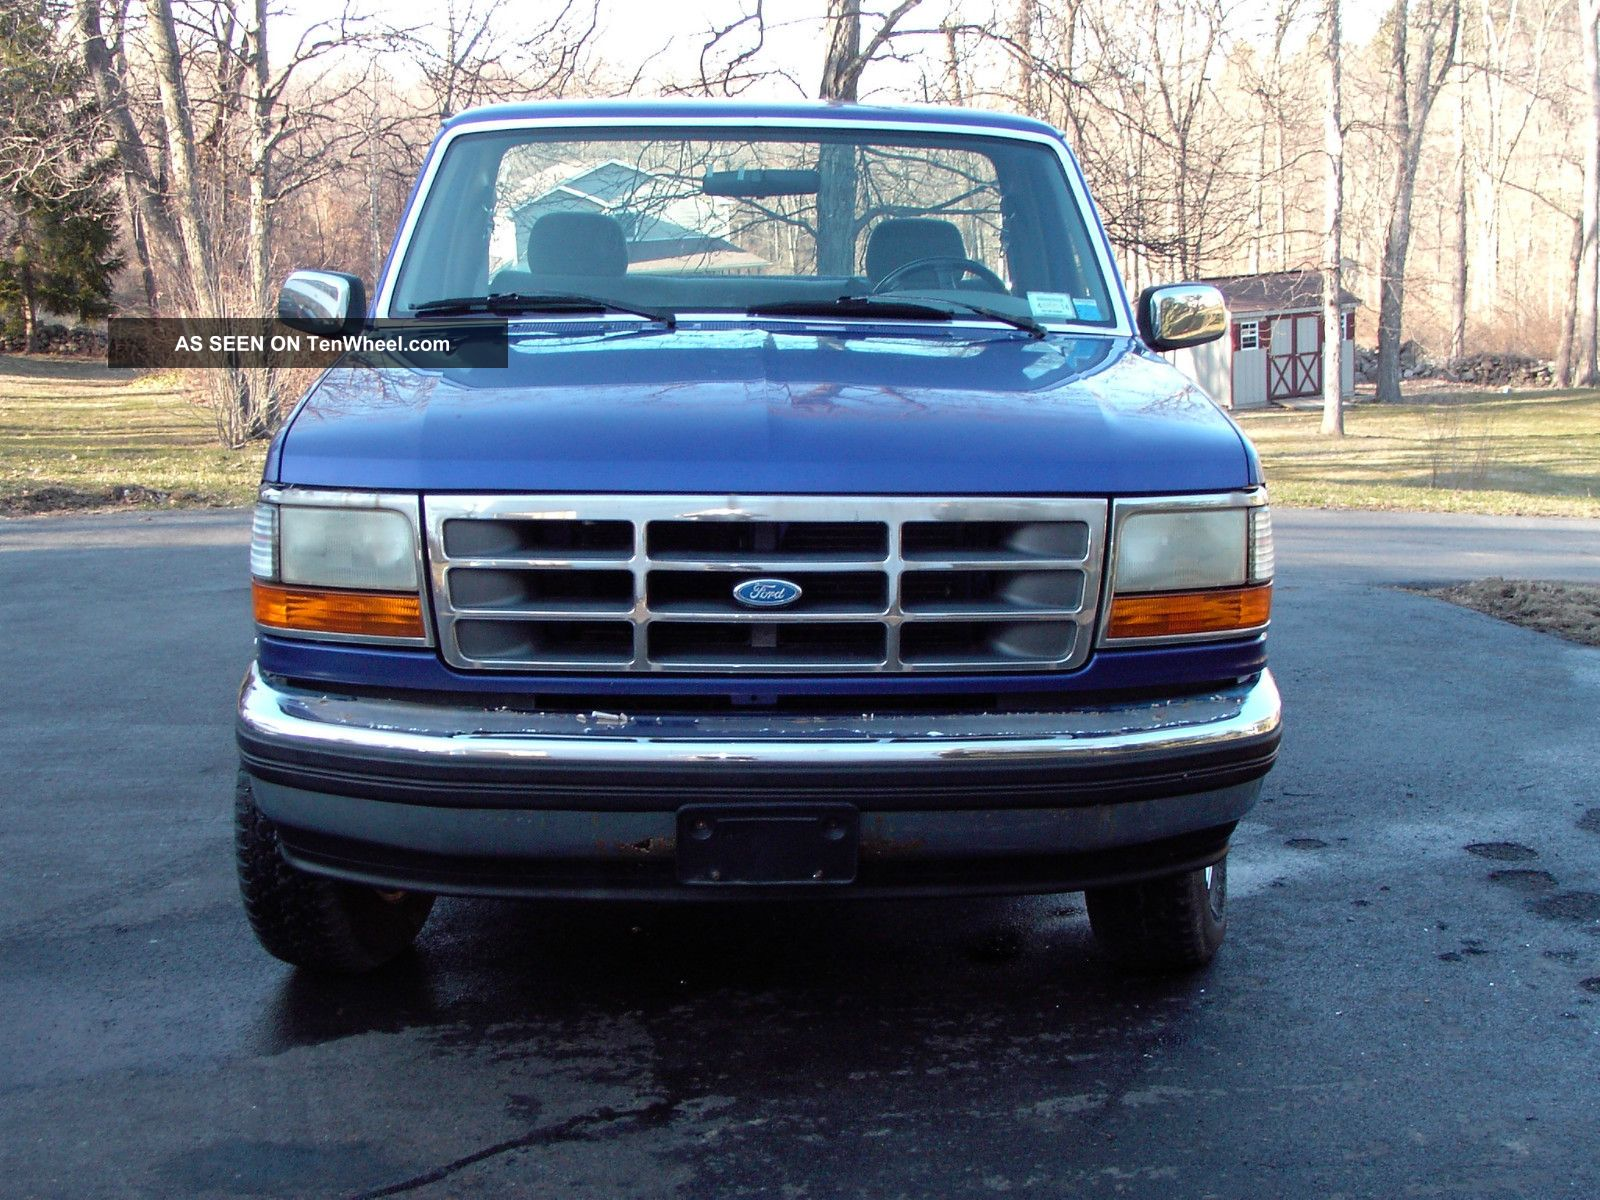 1995 ford f 150 f150 4x4 4wd longbed pickup truck 5 0 automatic. Black Bedroom Furniture Sets. Home Design Ideas